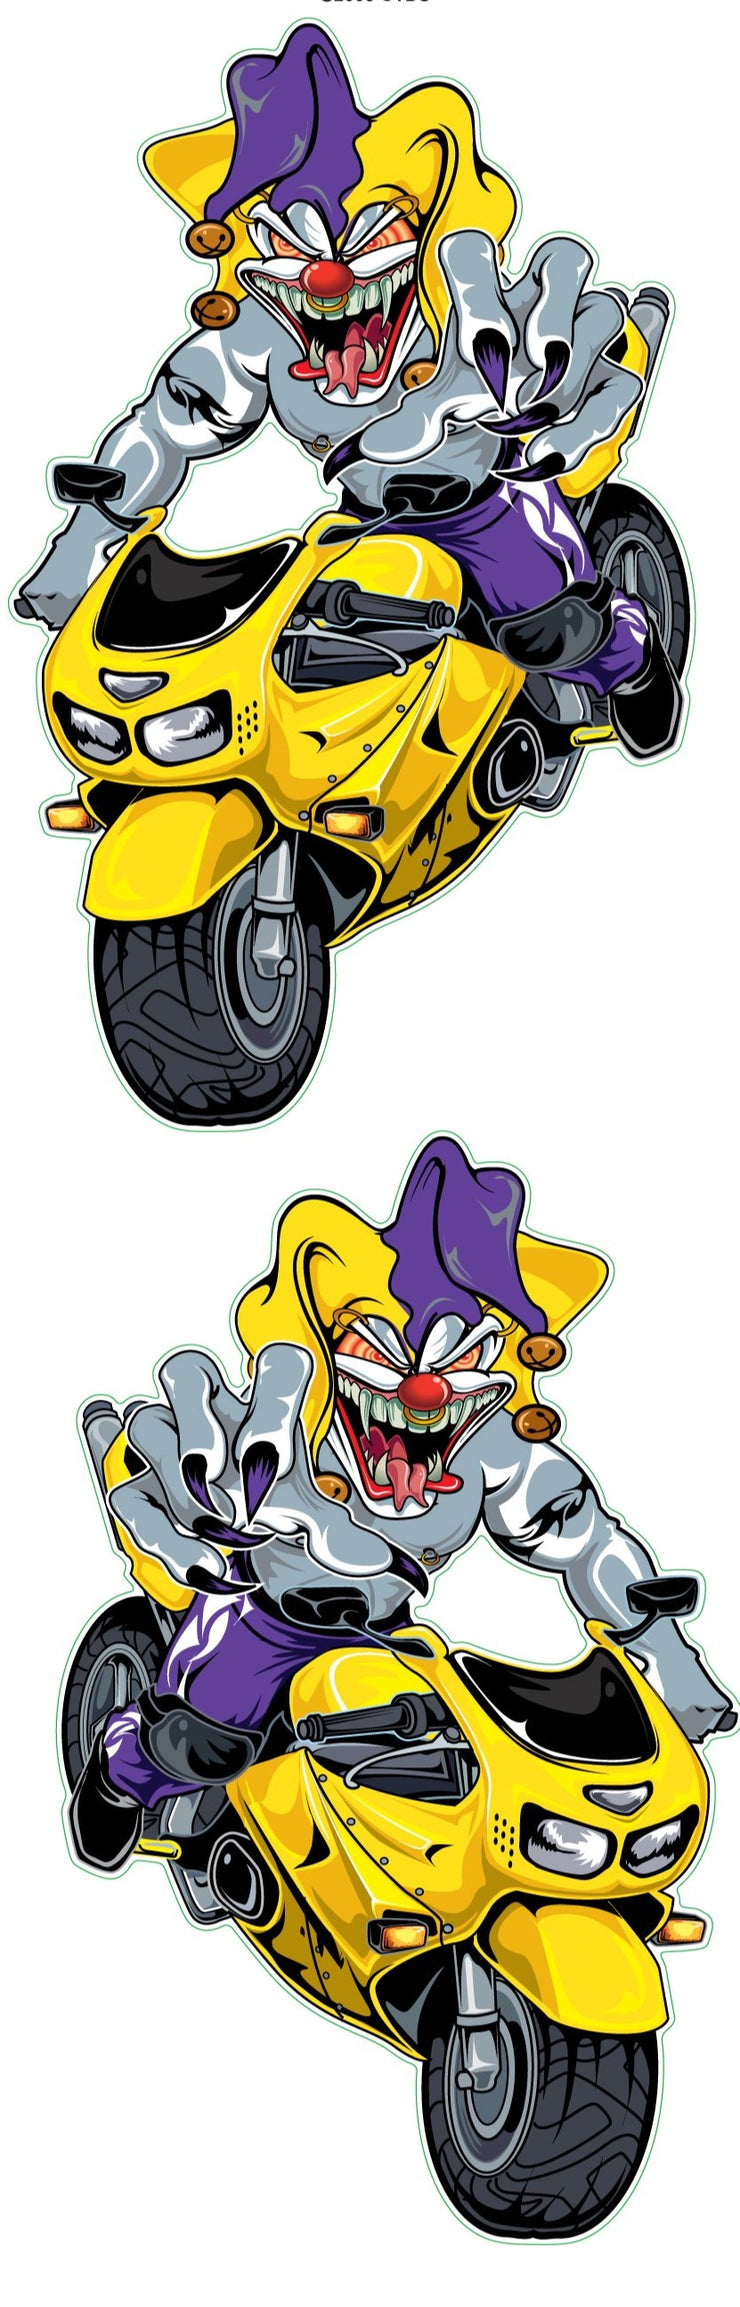 Sportbike Killer Clown Decal